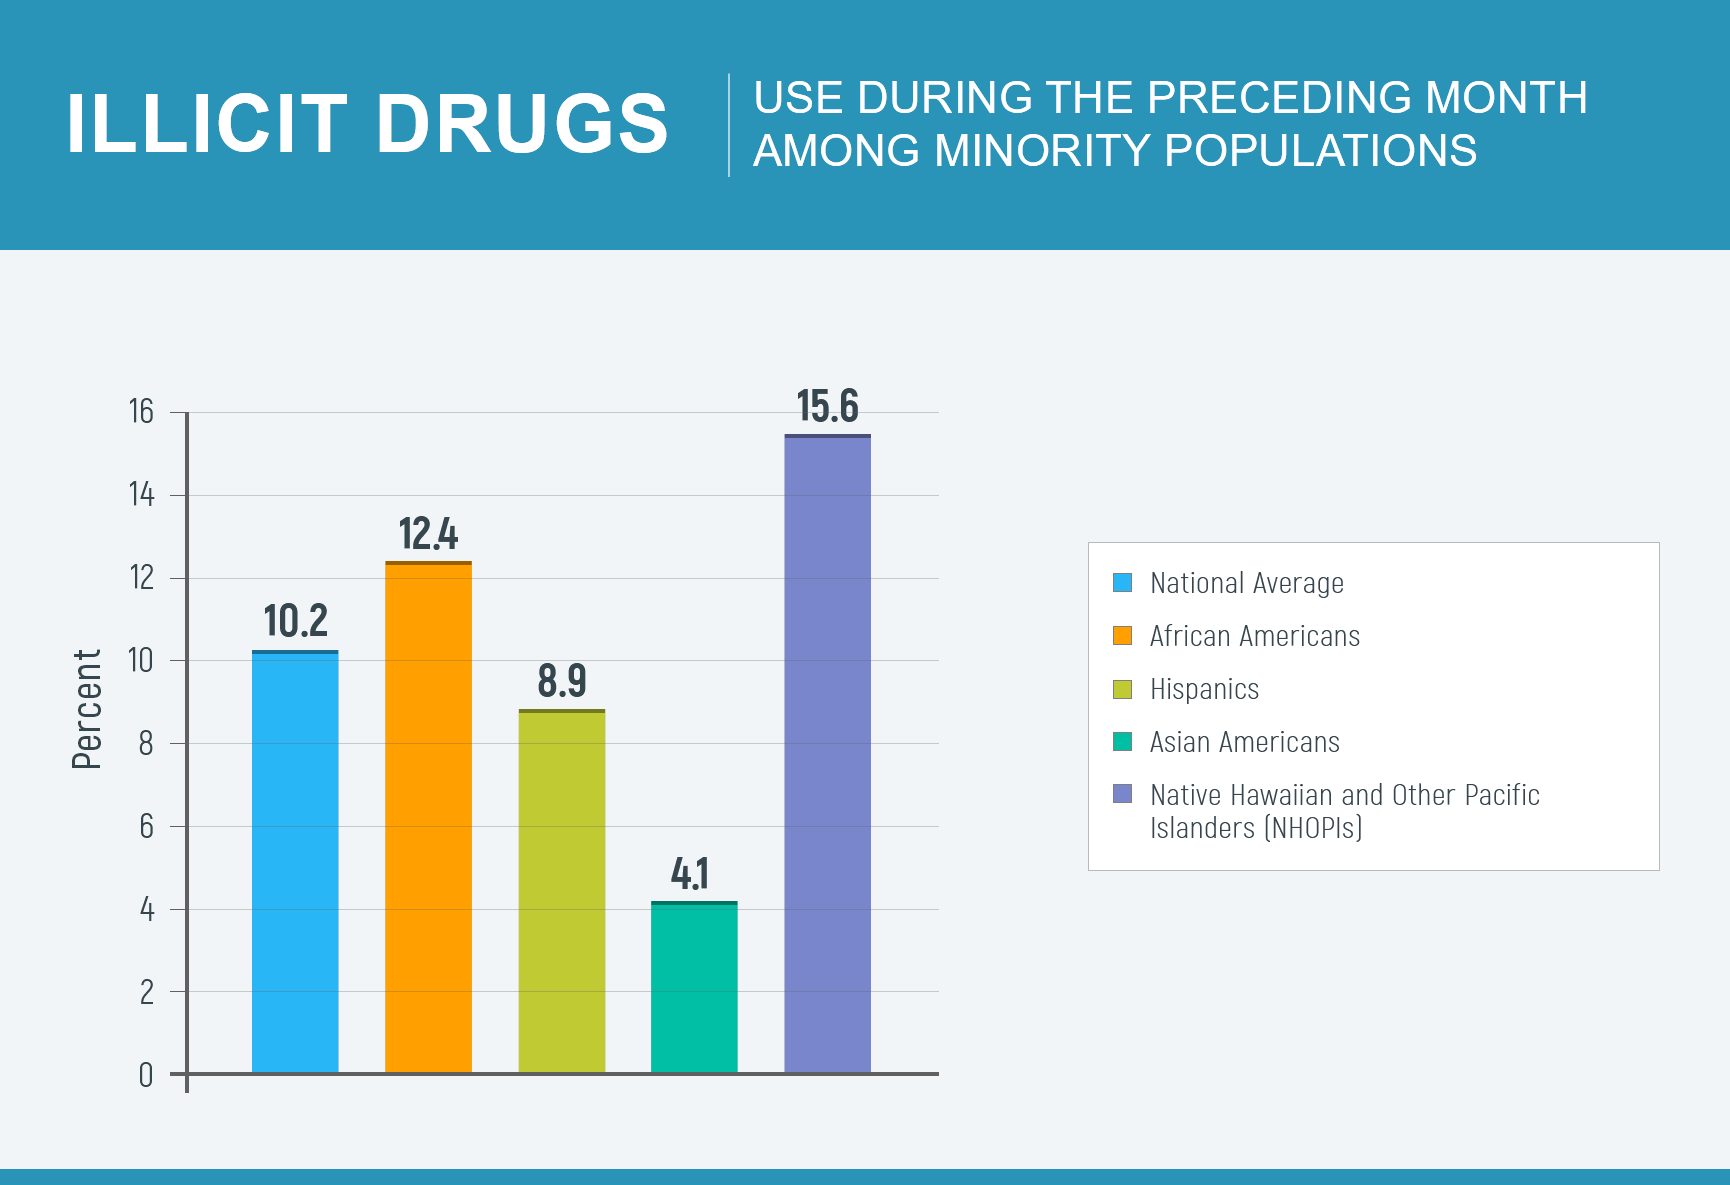 Illicit drugs use during the preceding month among minority populations diagram